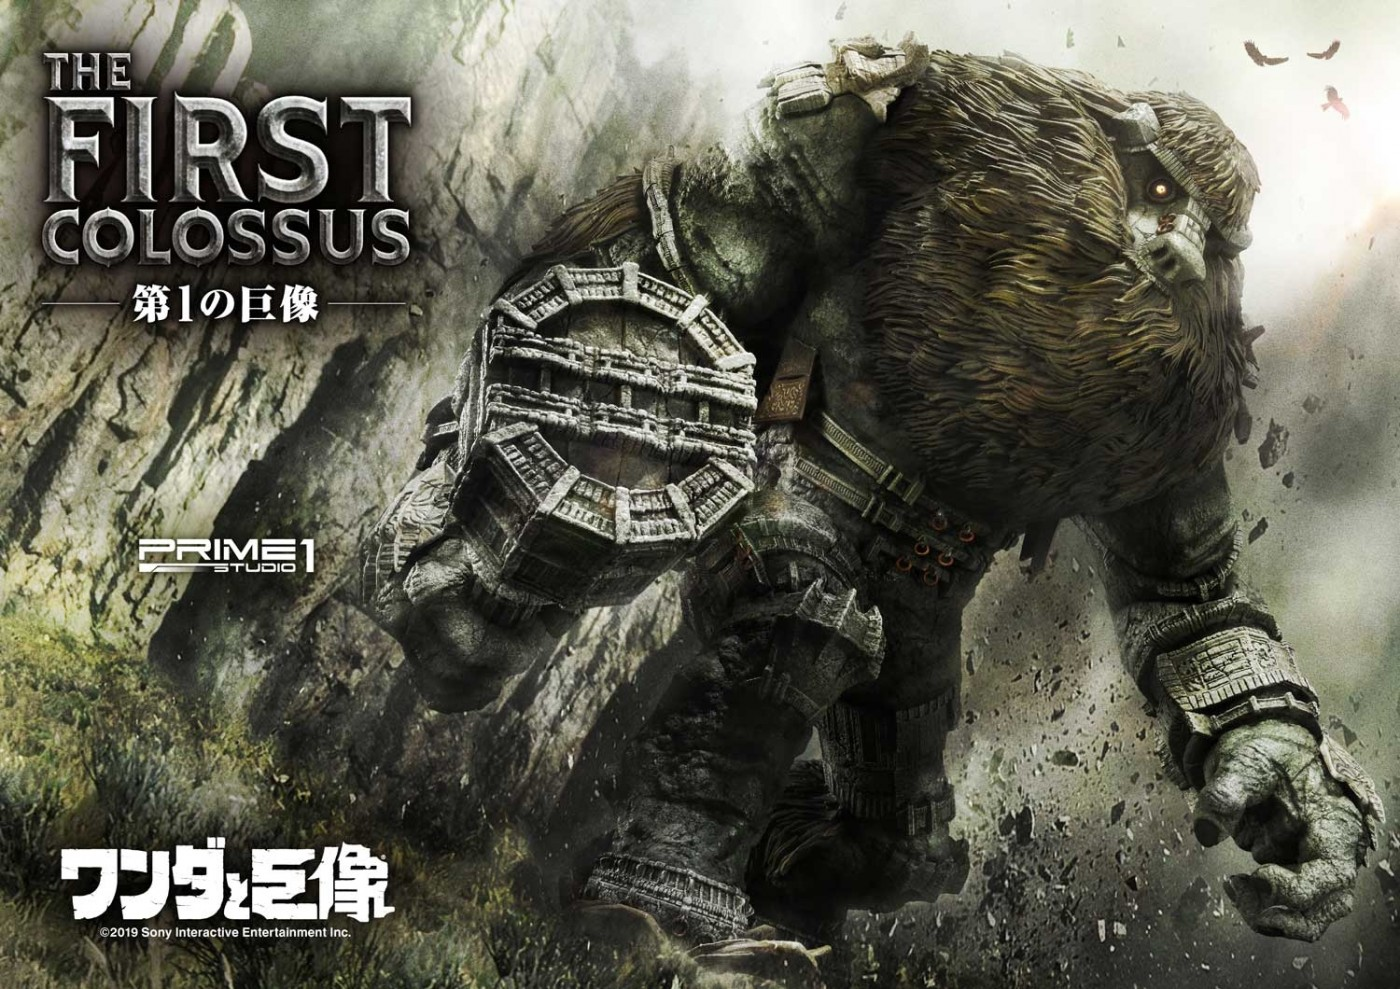 New Collector's Statue for Shadow of the Colossus